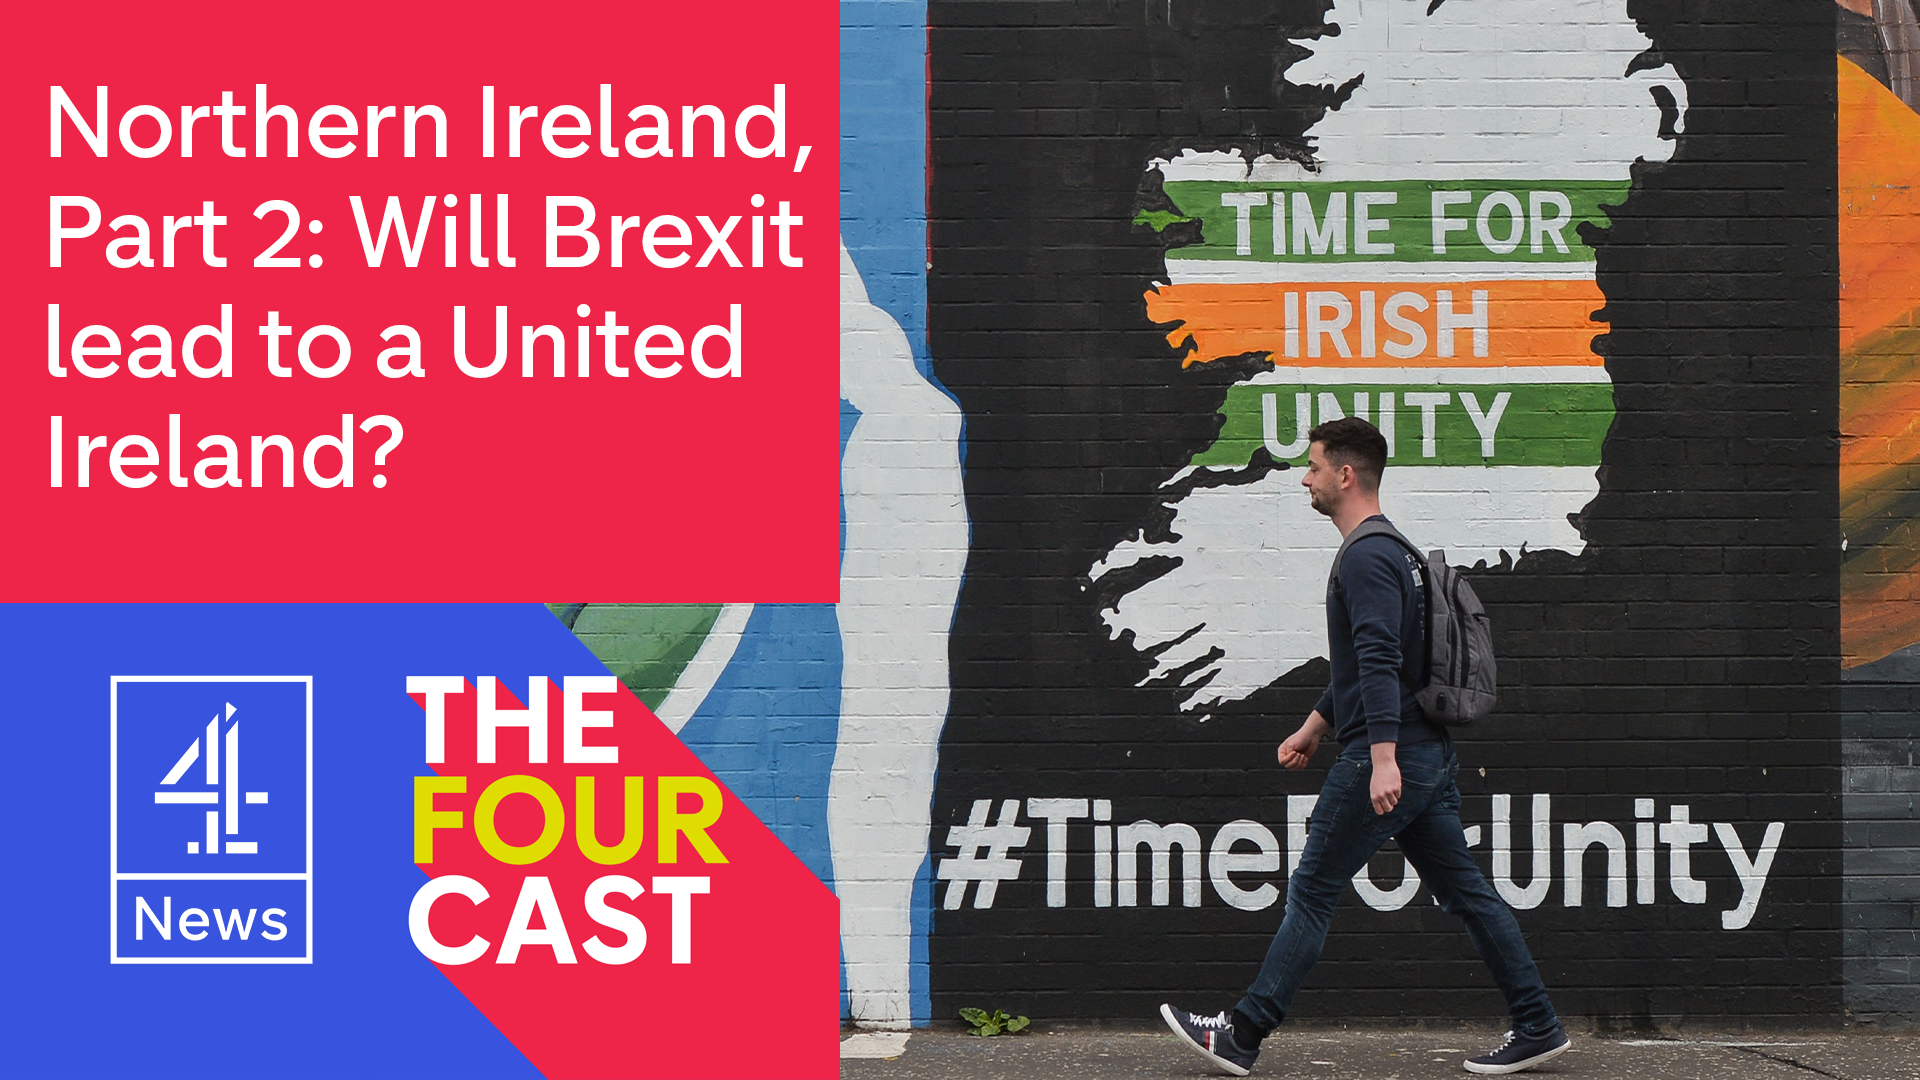 Will Brexit lead to a United Ireland? – Channel 4 NewsChannel 4 NewsShare on FacebookShare on TwitterShare on WhatsAppShare on WhatsAppShare on WhatsAppLoad more share optionsShare on FacebookShare on TwitterShare on WhatsAppShare on WhatsAppShare on WhatsAppLoad more share options